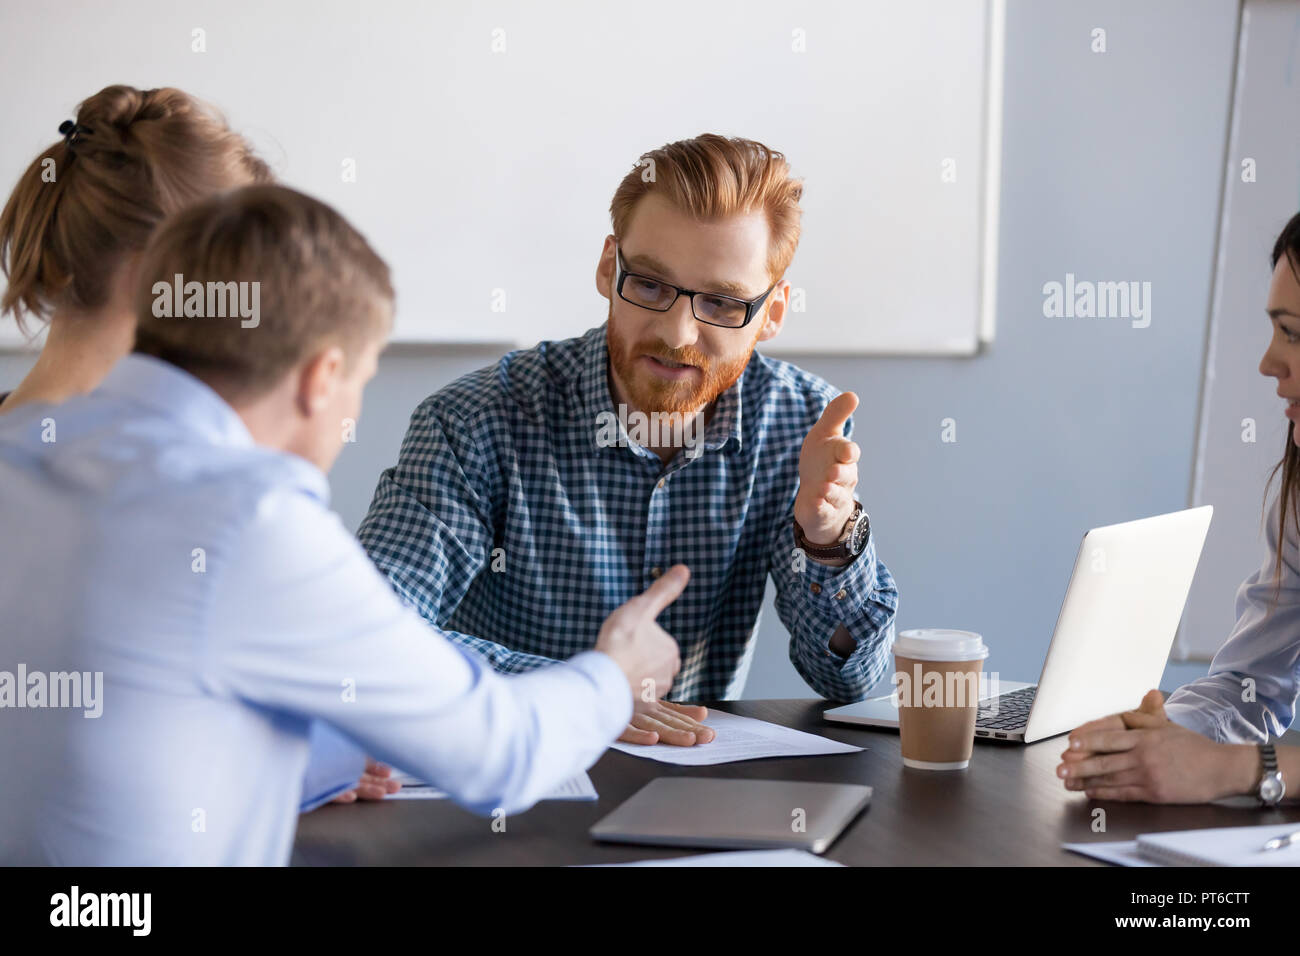 Serious business men having discussion, dispute or disagreement  - Stock Image